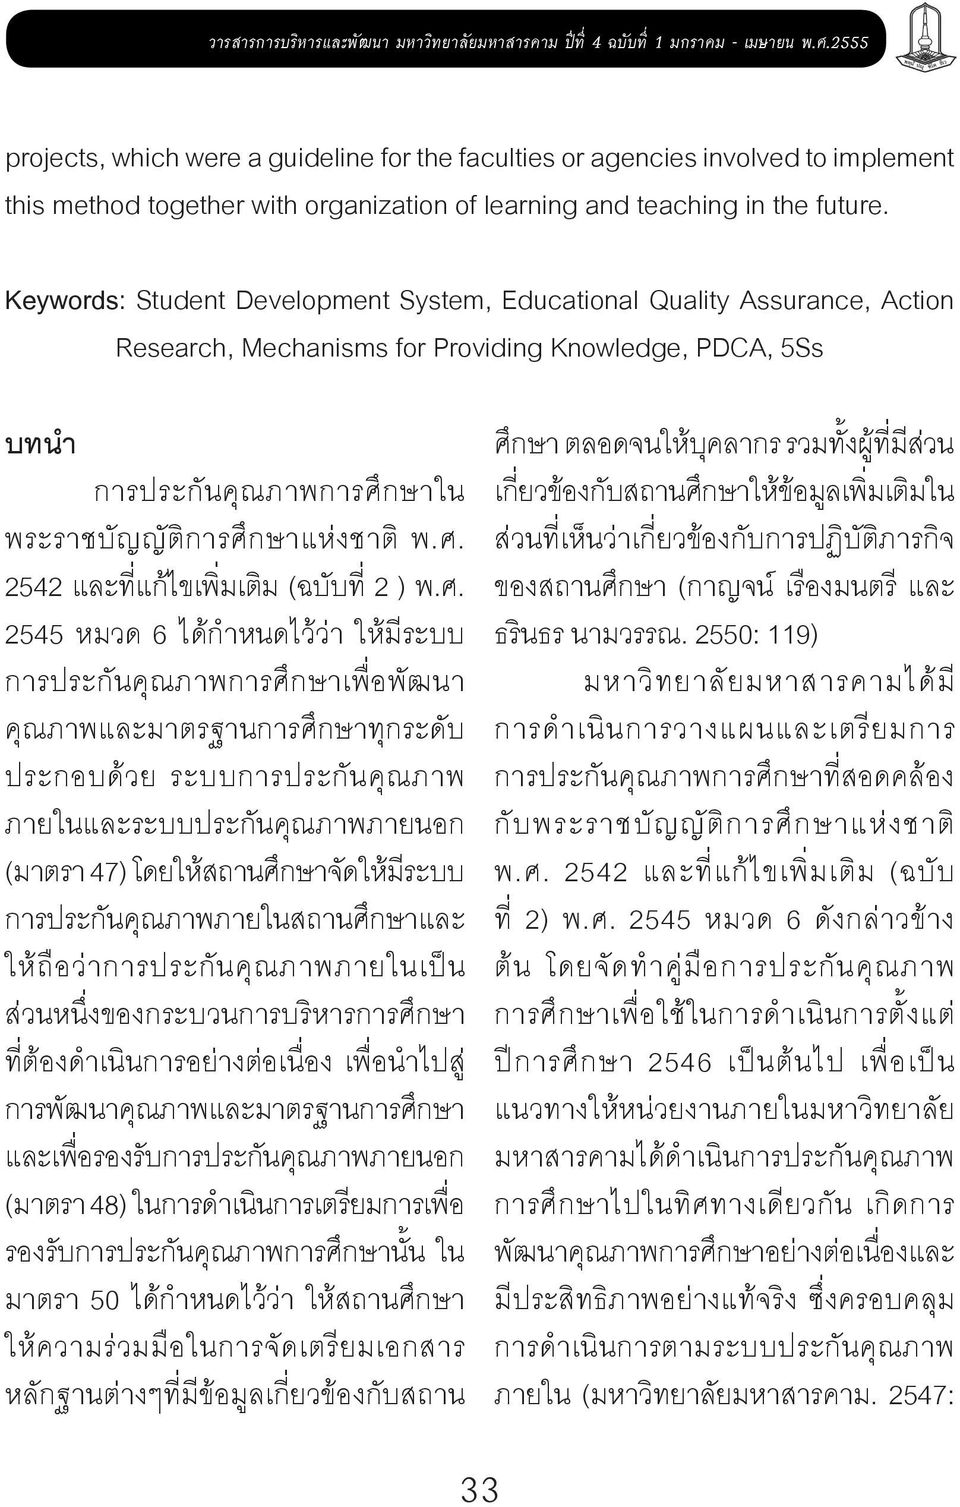 Keywords: Student Development System, Educational Quality Assurance, Action Research, Mechanisms for Providing Knowledge, PDCA, 5Ss บทนำา การประก นค ณภาพการศ กษาใน พระราชบ ญญ ต การศ กษาแห งชาต พ.ศ. 2542 และท แก ไขเพ มเต ม (ฉบ บท 2 ) พ.